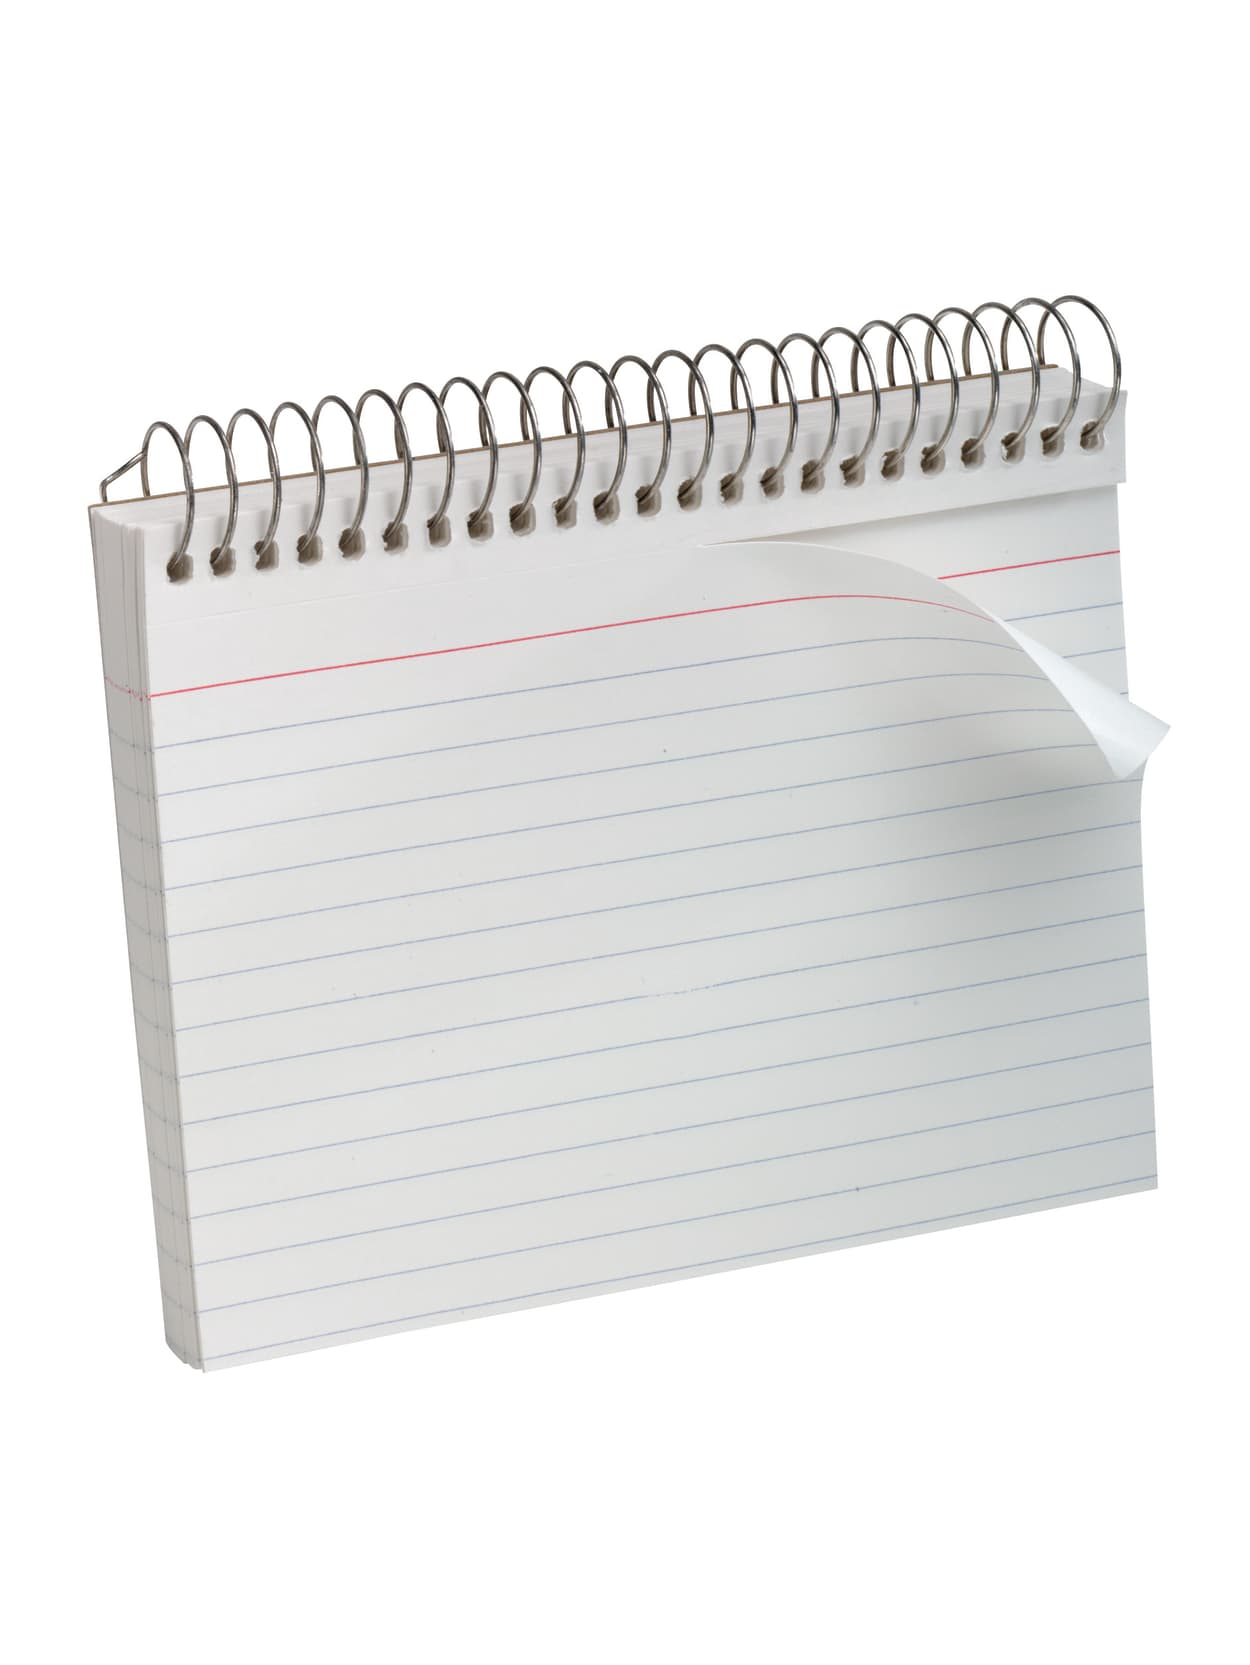 Oxford Blank Index Cards 4 x 6 2 Pack White